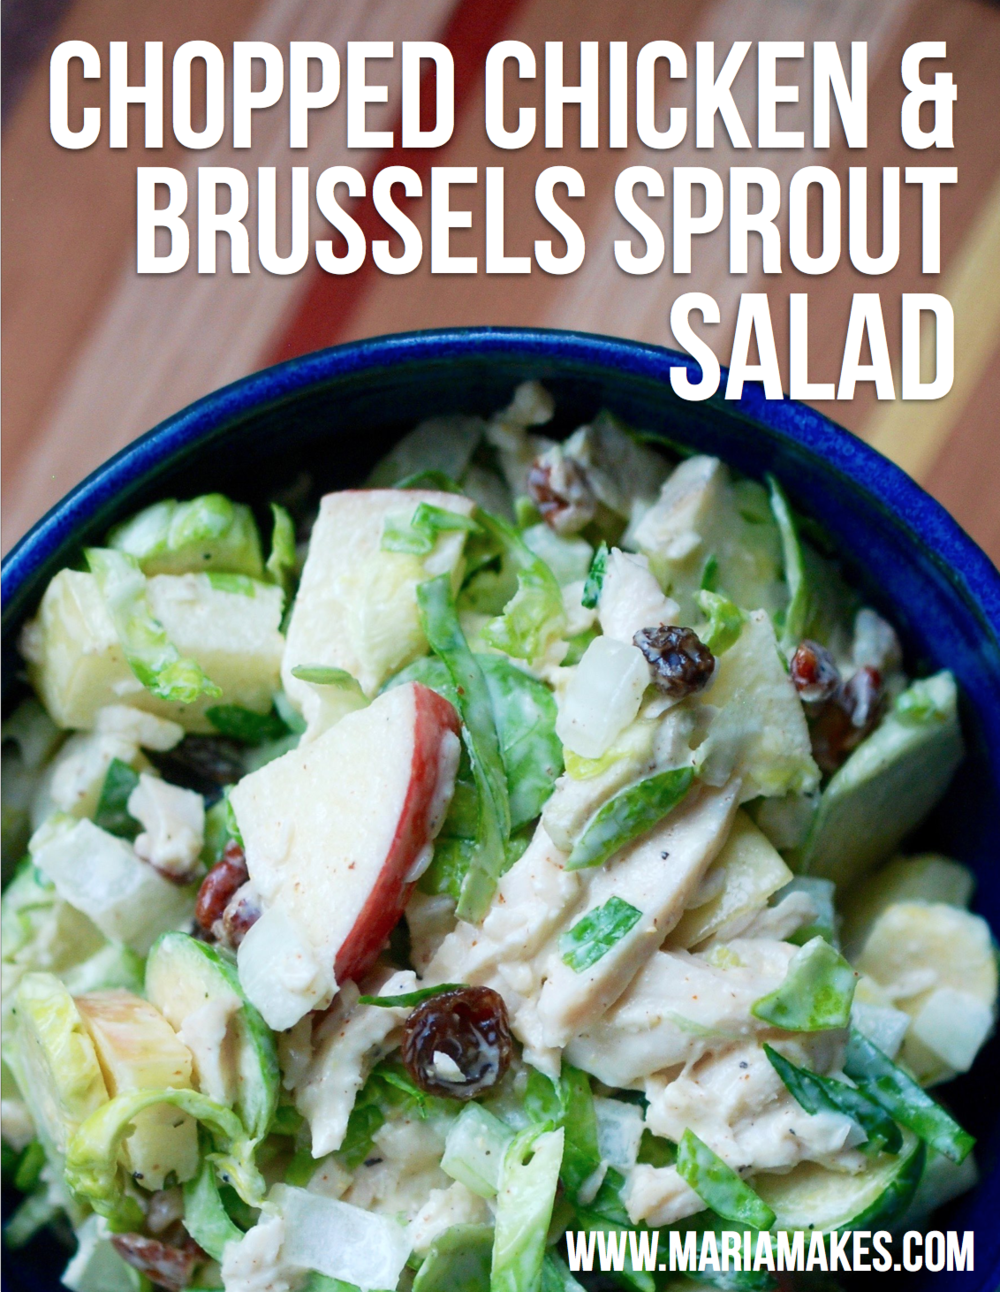 Chopped Chicken & Brussels Sprout Salad – Maria Makes: Make-ahead lunch idea  #Whole30  and  #Paleo